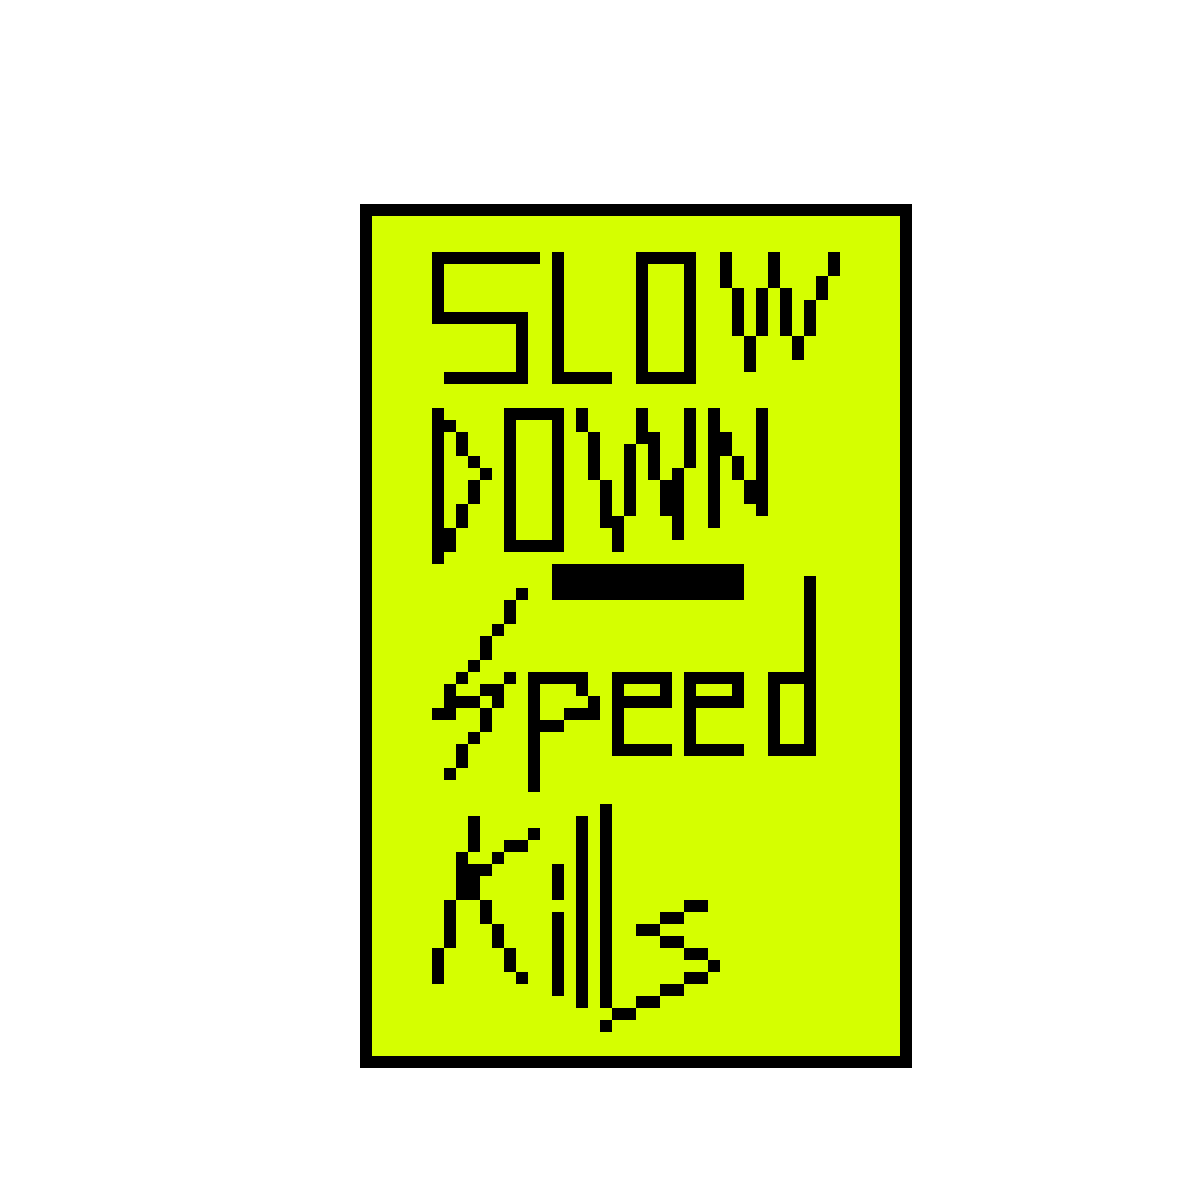 Slow - street sign by Terminators